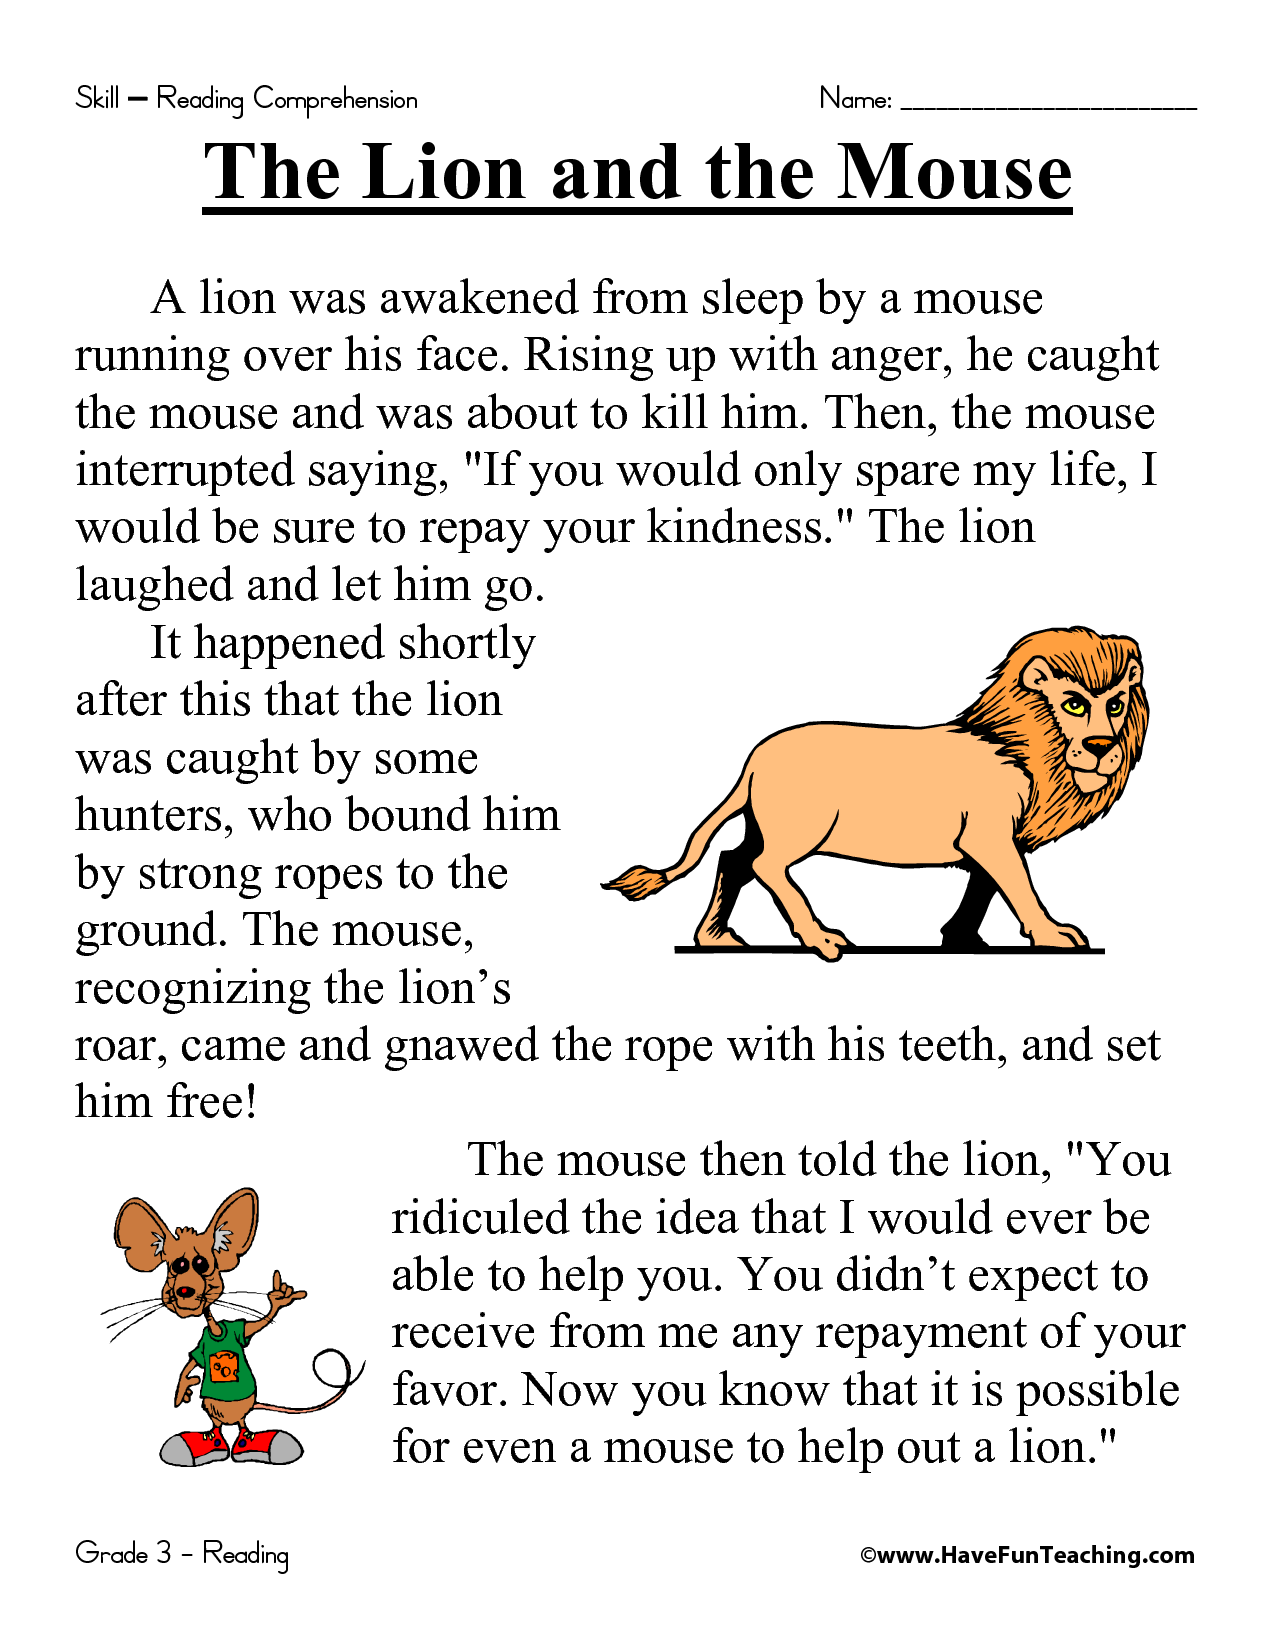 Free Worksheet Free Comprehension Worksheets For Grade 2 printable reading comprehension worksheets inc exercises for first grade the lion and mouse worksheet